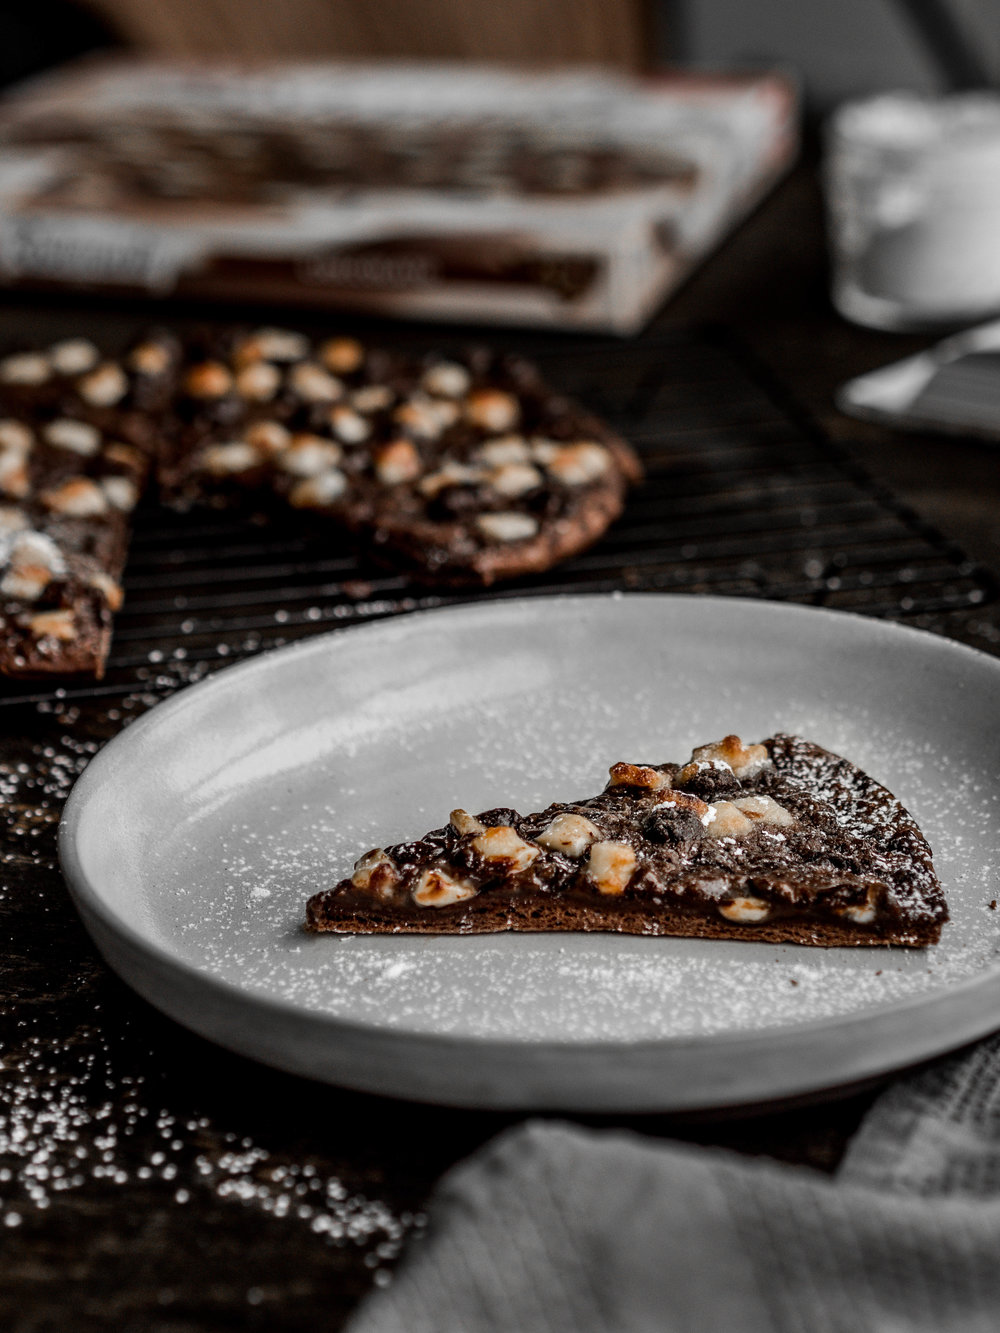 the perfect slice. - Crispy chocolate thin crust base, chocolate sauce, white chocolate chunks, milk chocolate shavings and lastly, dark chocolate chips.